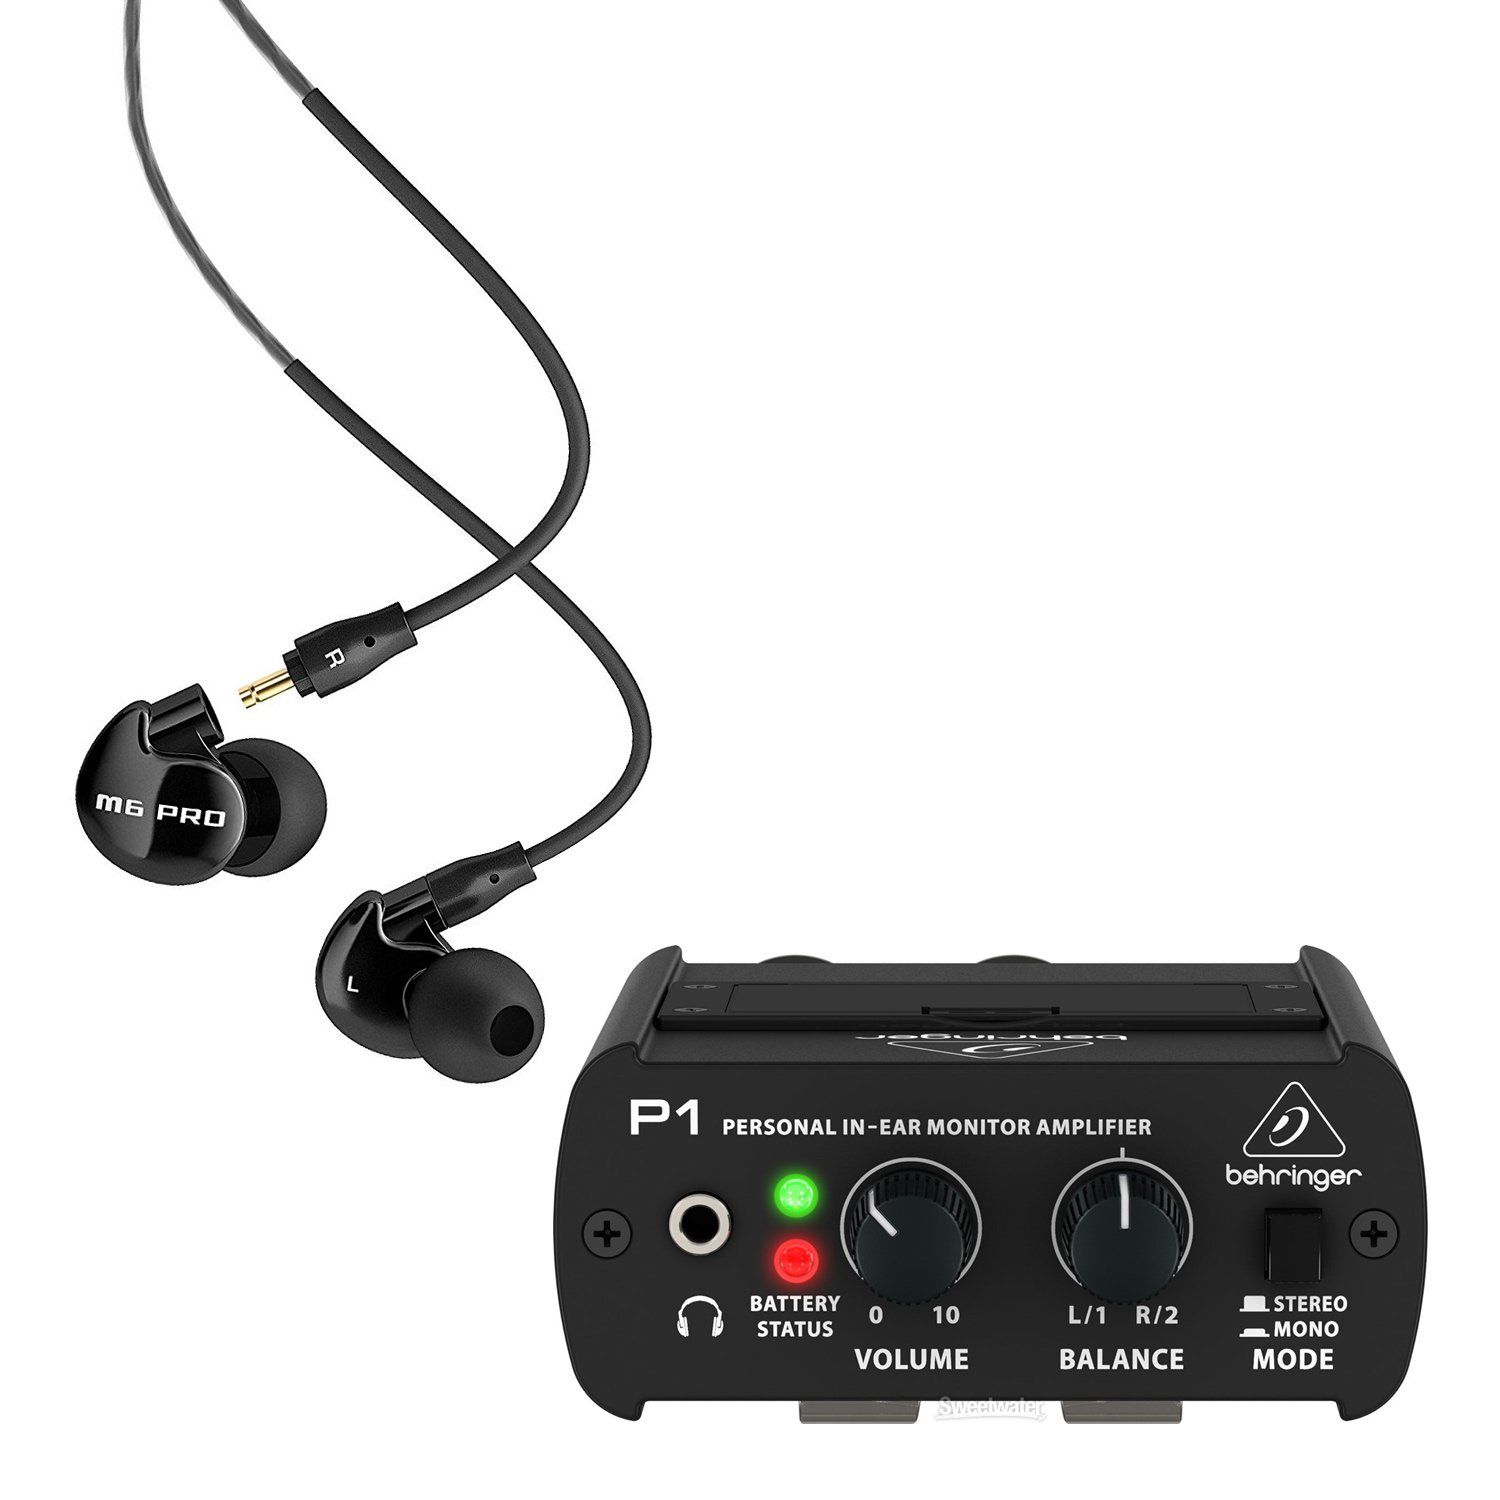 MEE Audio M6 PRO Noise-Isolating Musician's in-Ear Monitors, Jet Black -Includes- Behringer Powerplay P1 in-Ear Monitor Amplifier blucoil